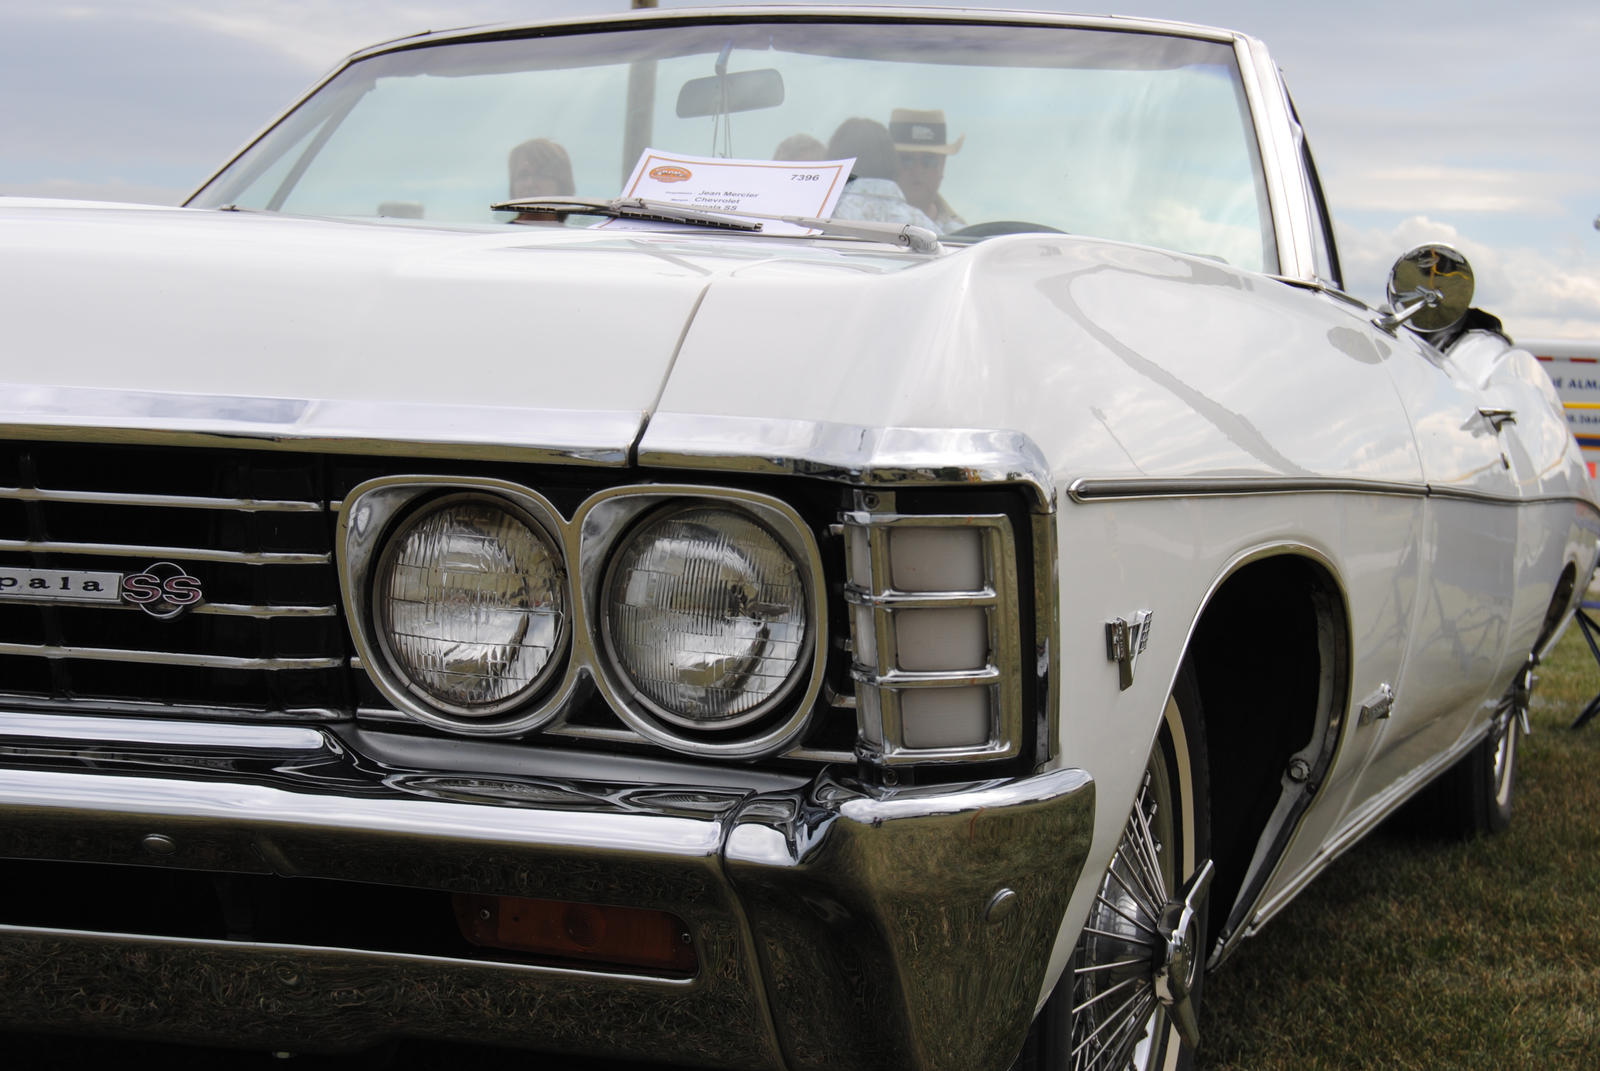 1967 Chevy Impala SS by The-Emard on DeviantArt